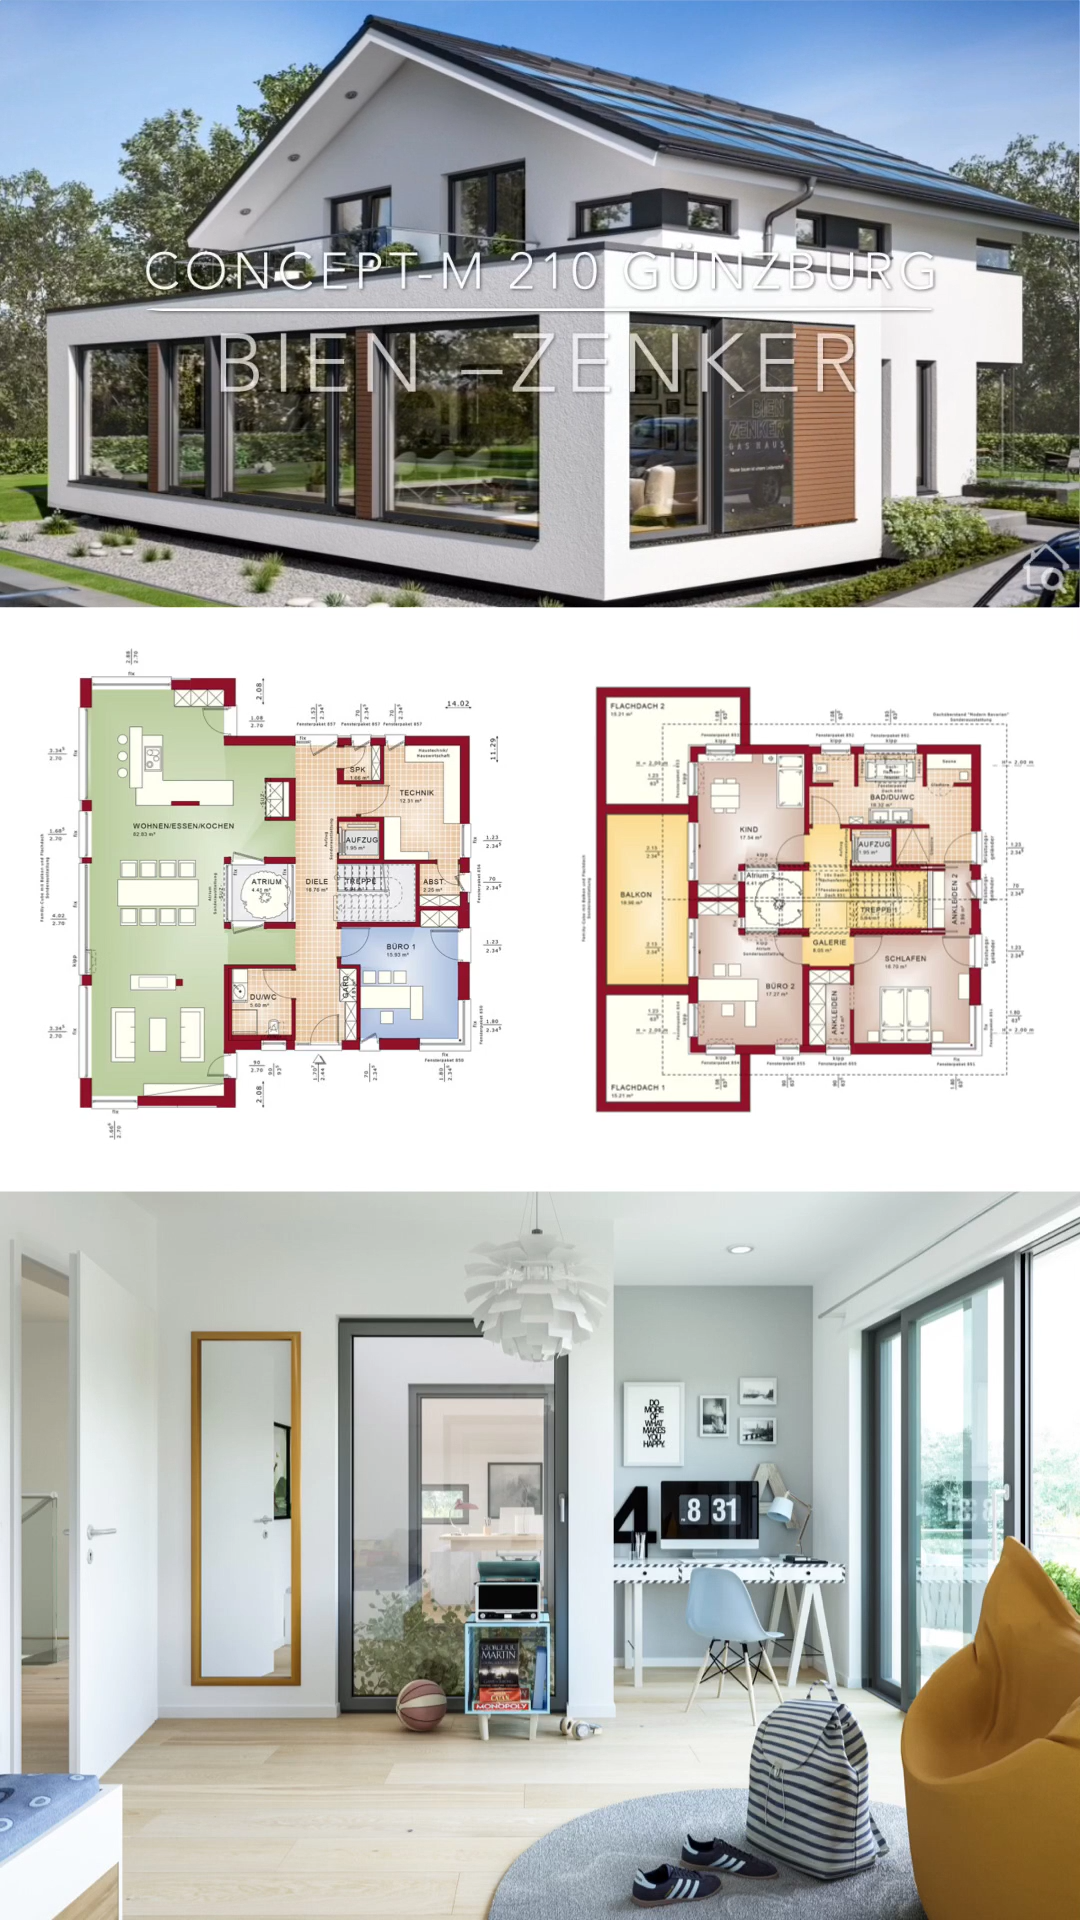 Dream Bedroom Videos Drawing Dreamhouse Dreamhome Decoration Modern Architecture Design Model House Plan Architecture Design